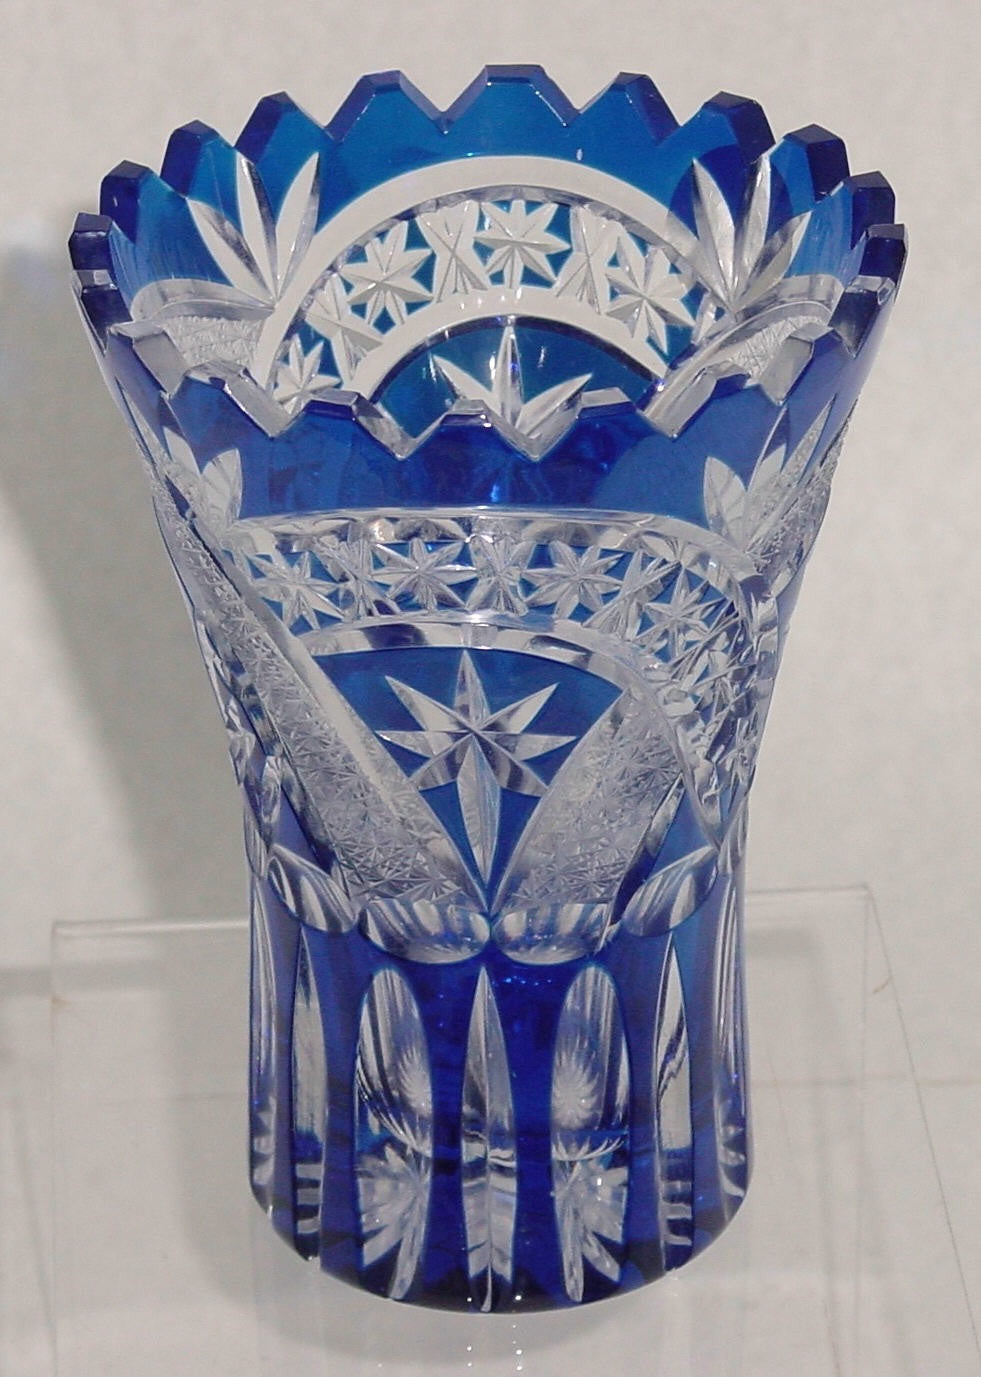 455028 Blue Cased W/Star Cuts & Rich Cut Panels Made In E. Germany, Bohemian Glassware, Kosherak, - ReeceFurniture.com - Free Local Pick Ups: Frankenmuth, MI, Indianapolis, IN, Chicago Ridge, IL, and Detroit, MI